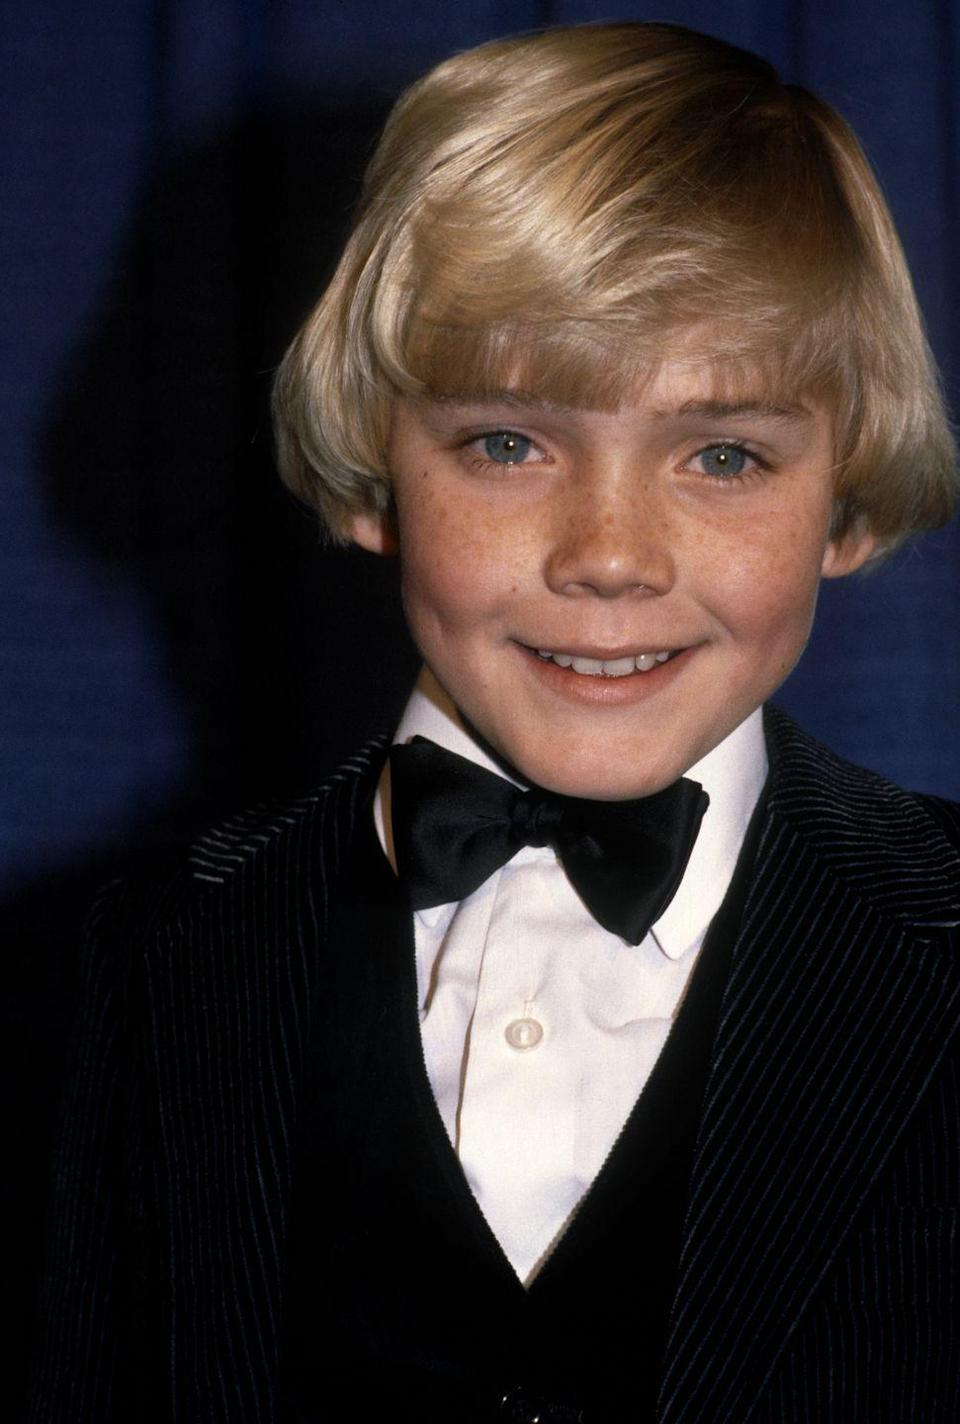 <p>As a child actor, Ricky Schroder became a household name on the sitcom <em>Silver Spoons, </em>a role he played from 1982-1987. Schroder continued acting through high school and college, but the performances failed to match the success of <em>Silver Spoons.</em></p>